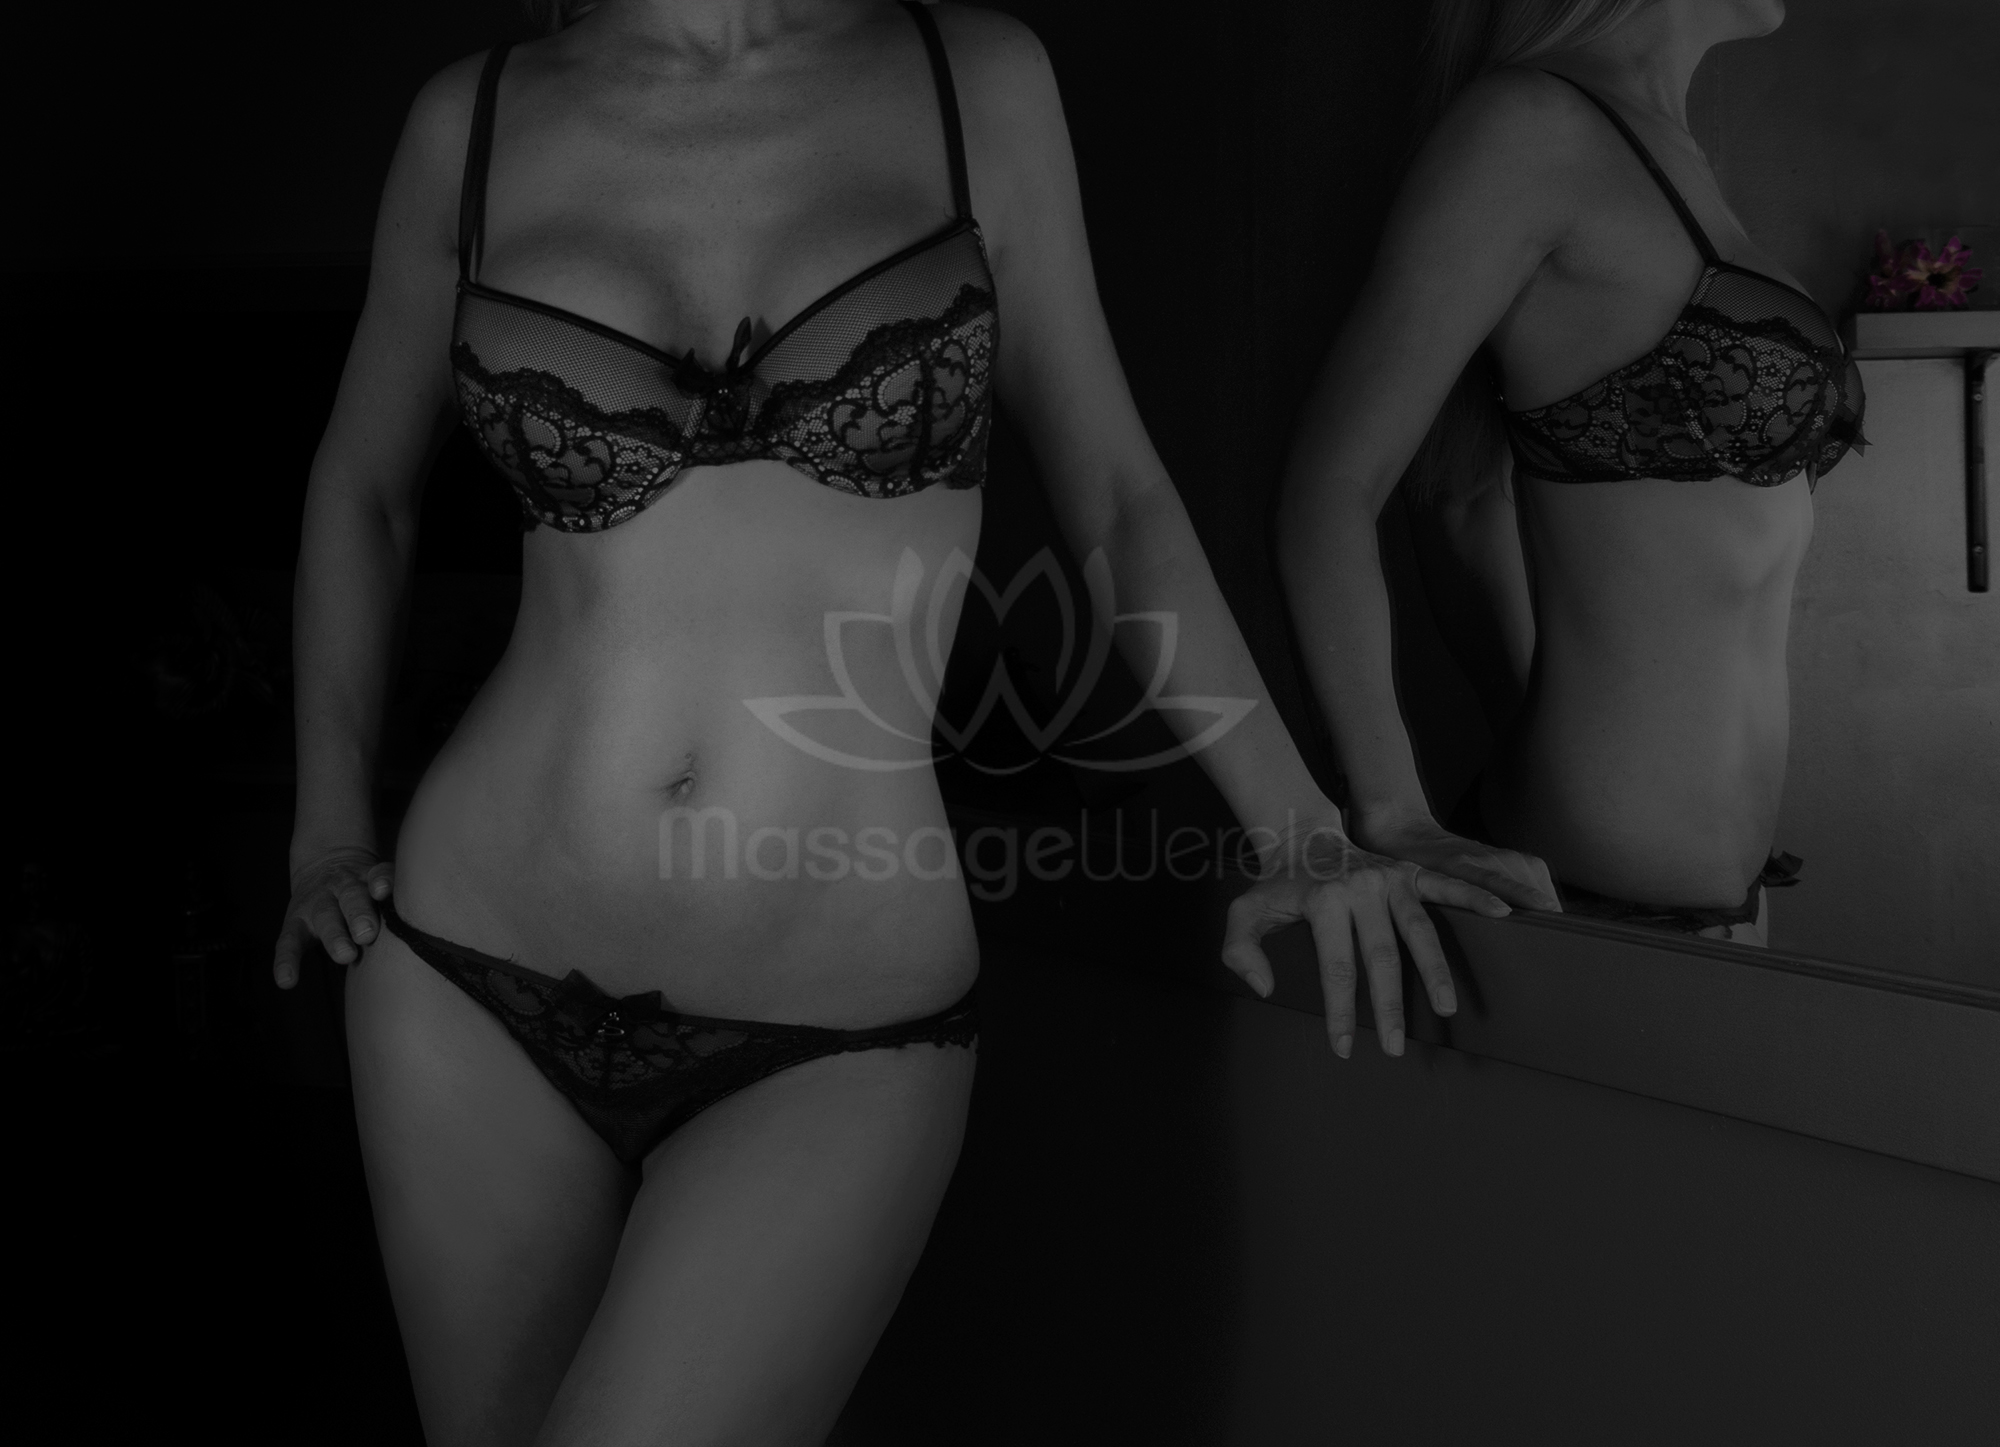 sexvideo den haag erotic massage